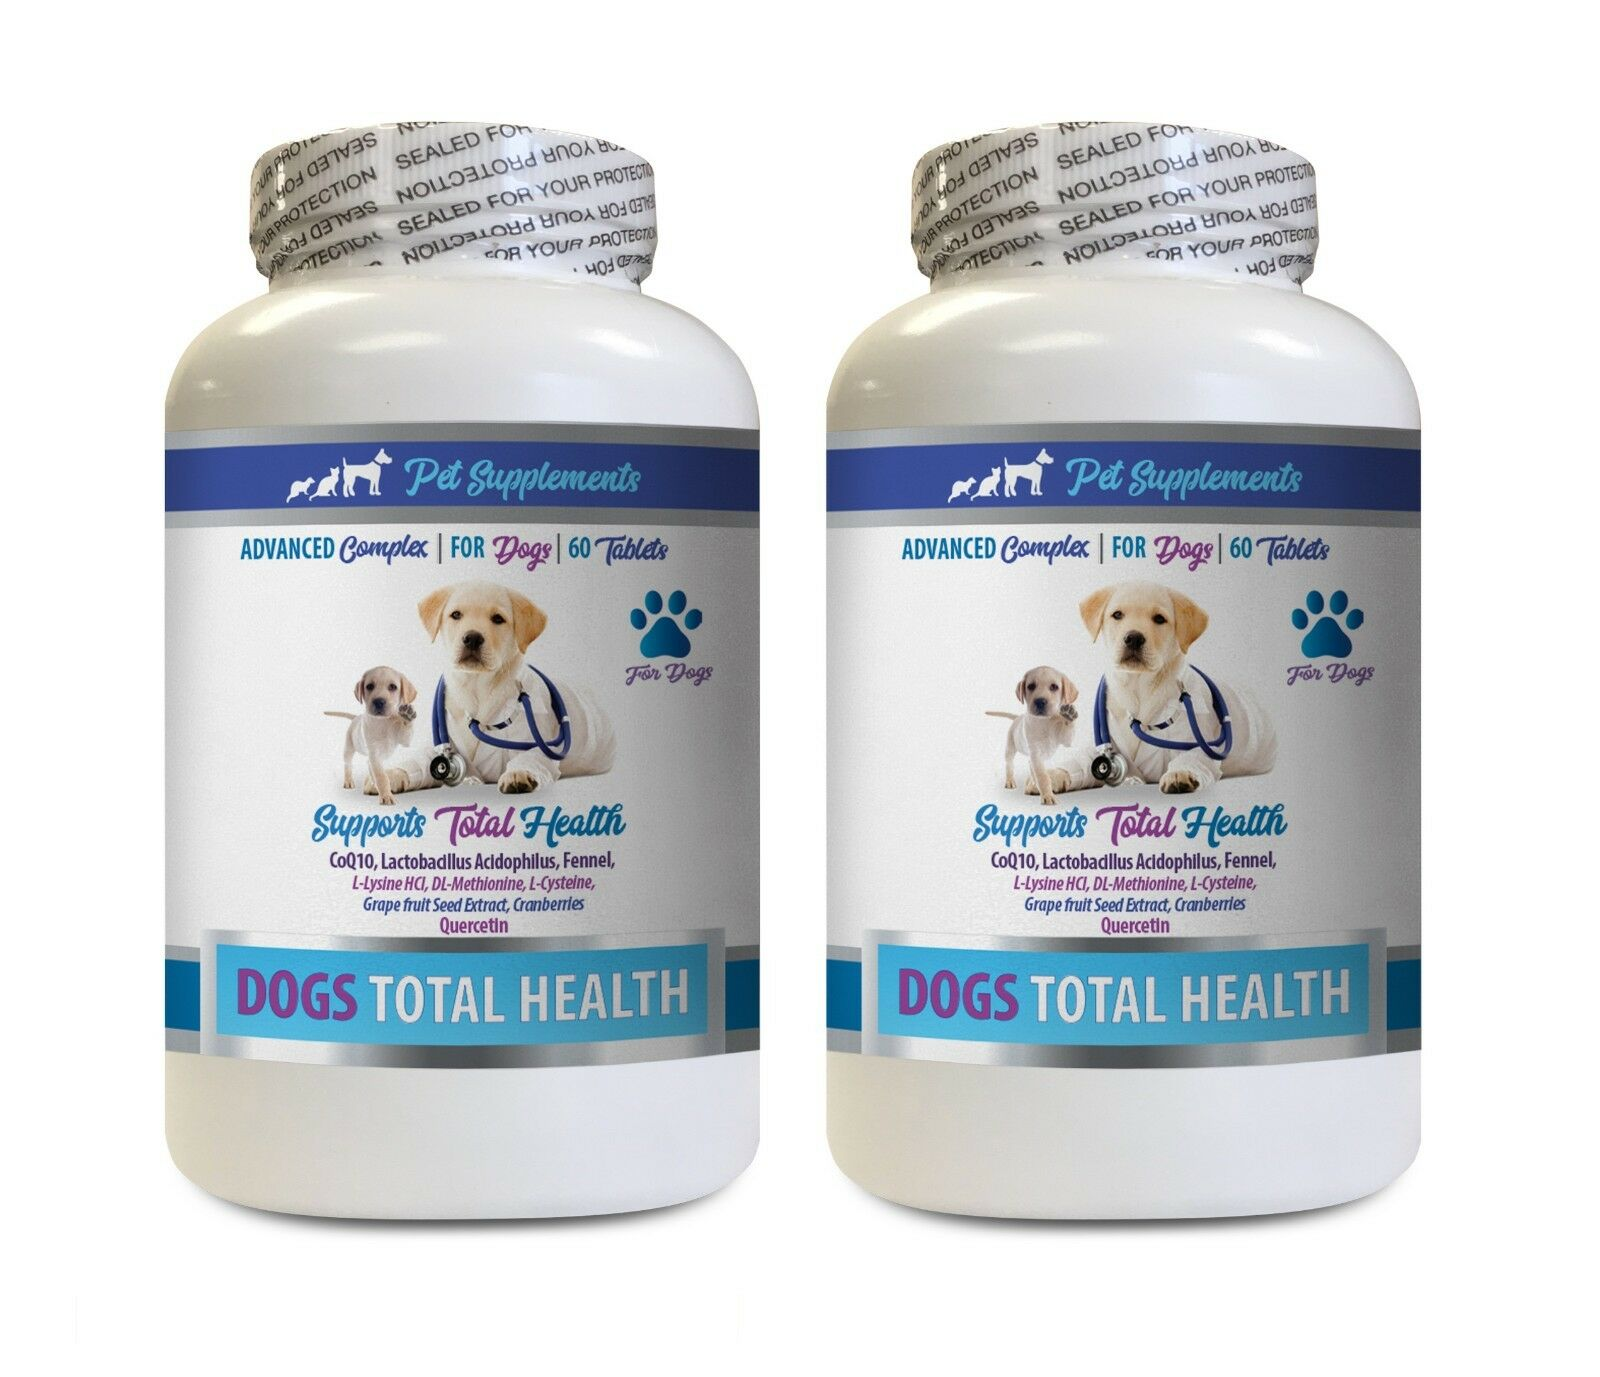 Hip and joint for dogs - DOG TOTAL HEALTH COMPLEX 2B- dog vitamin a